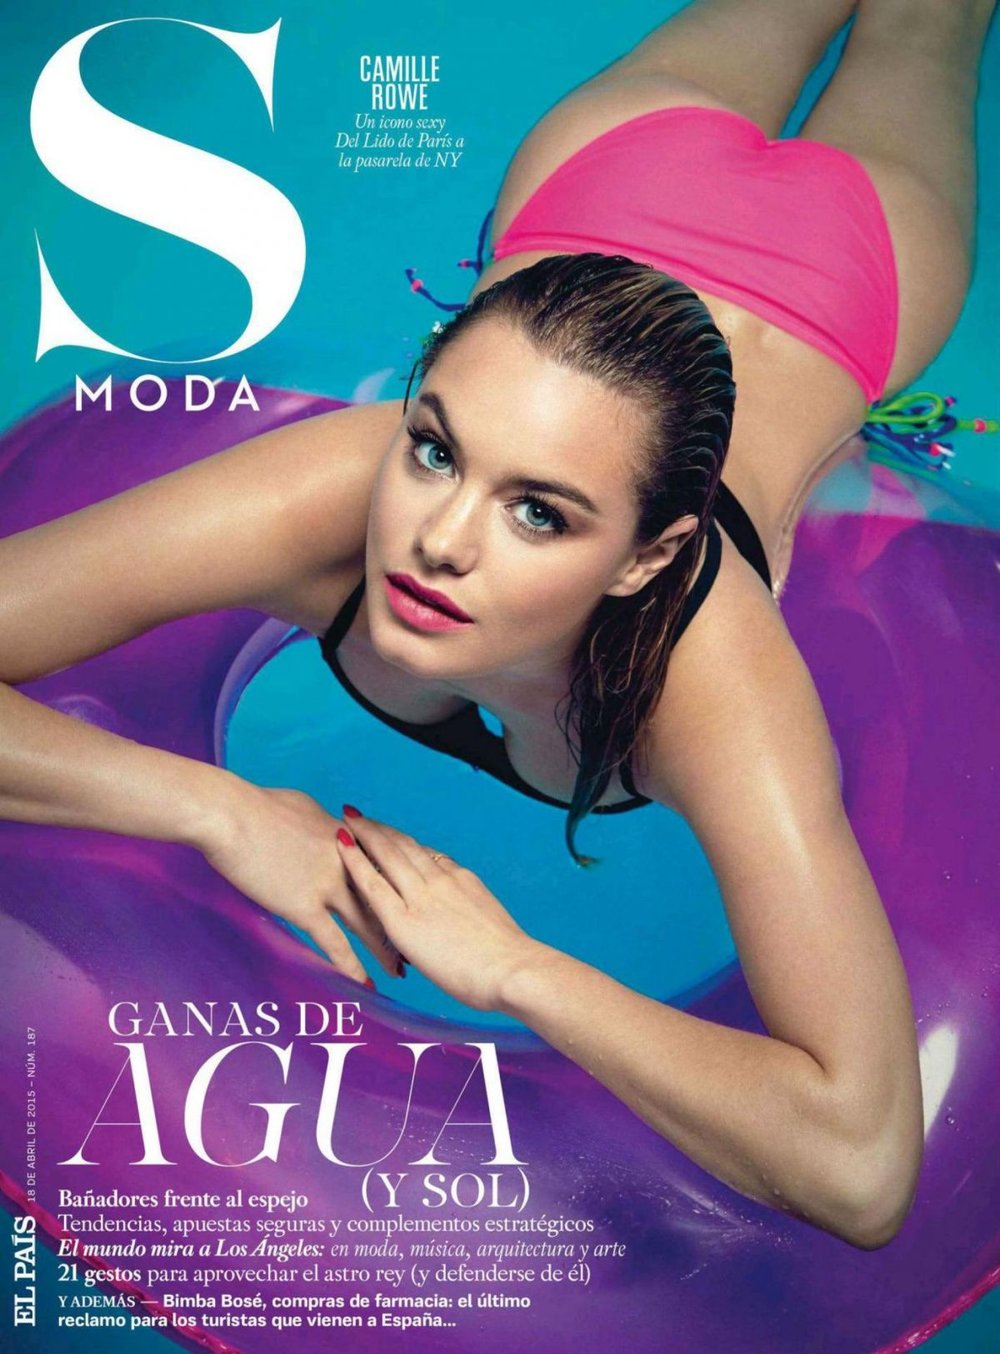 camille-rowe-in-s-moda-magazine-spain-april-2015-issue_2.jpg